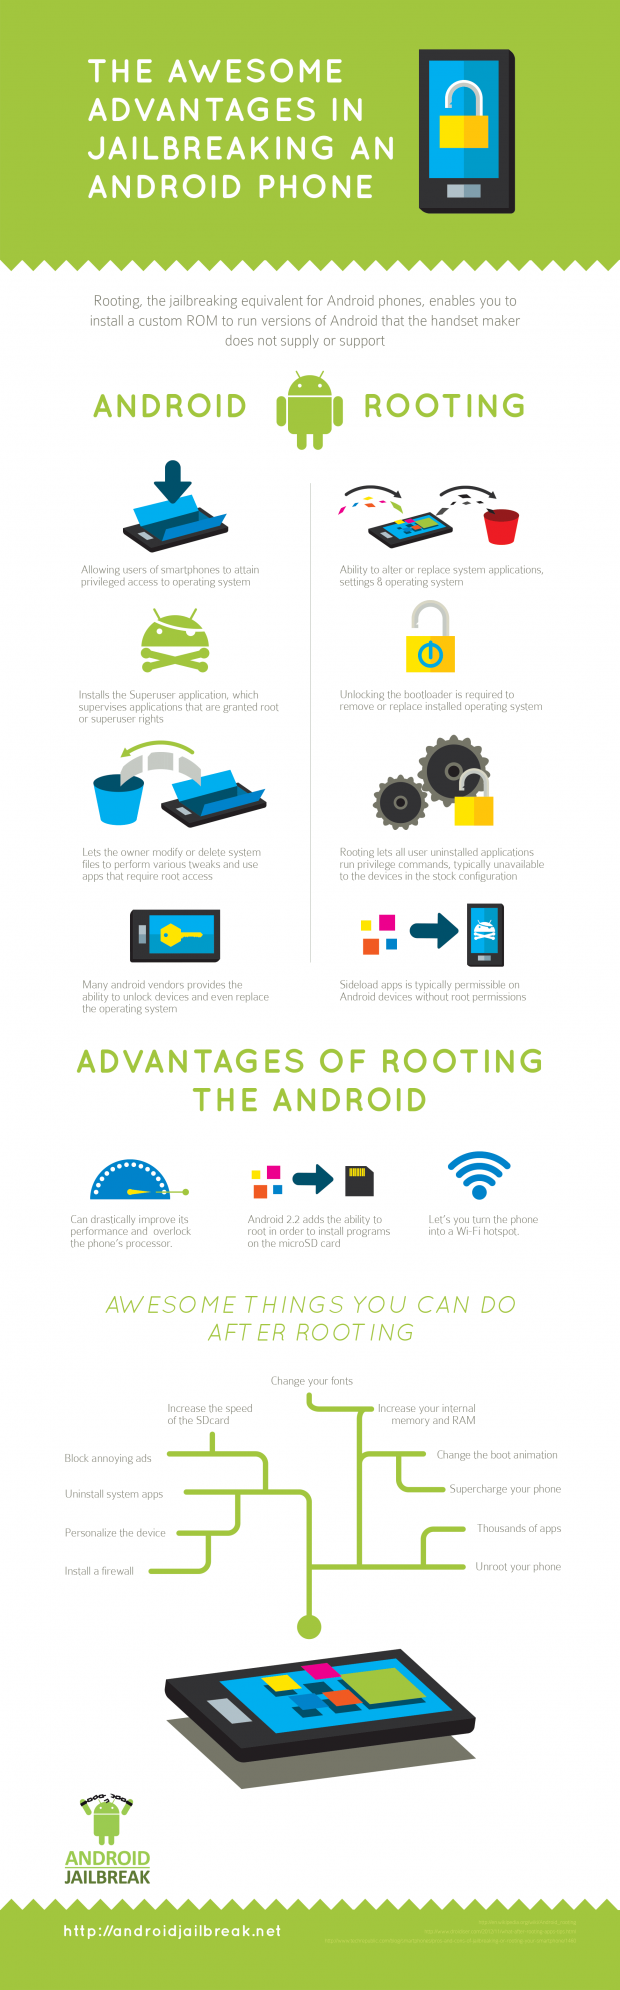 Advantages-of-Android-Jailbreak-Infographic1-620x1990